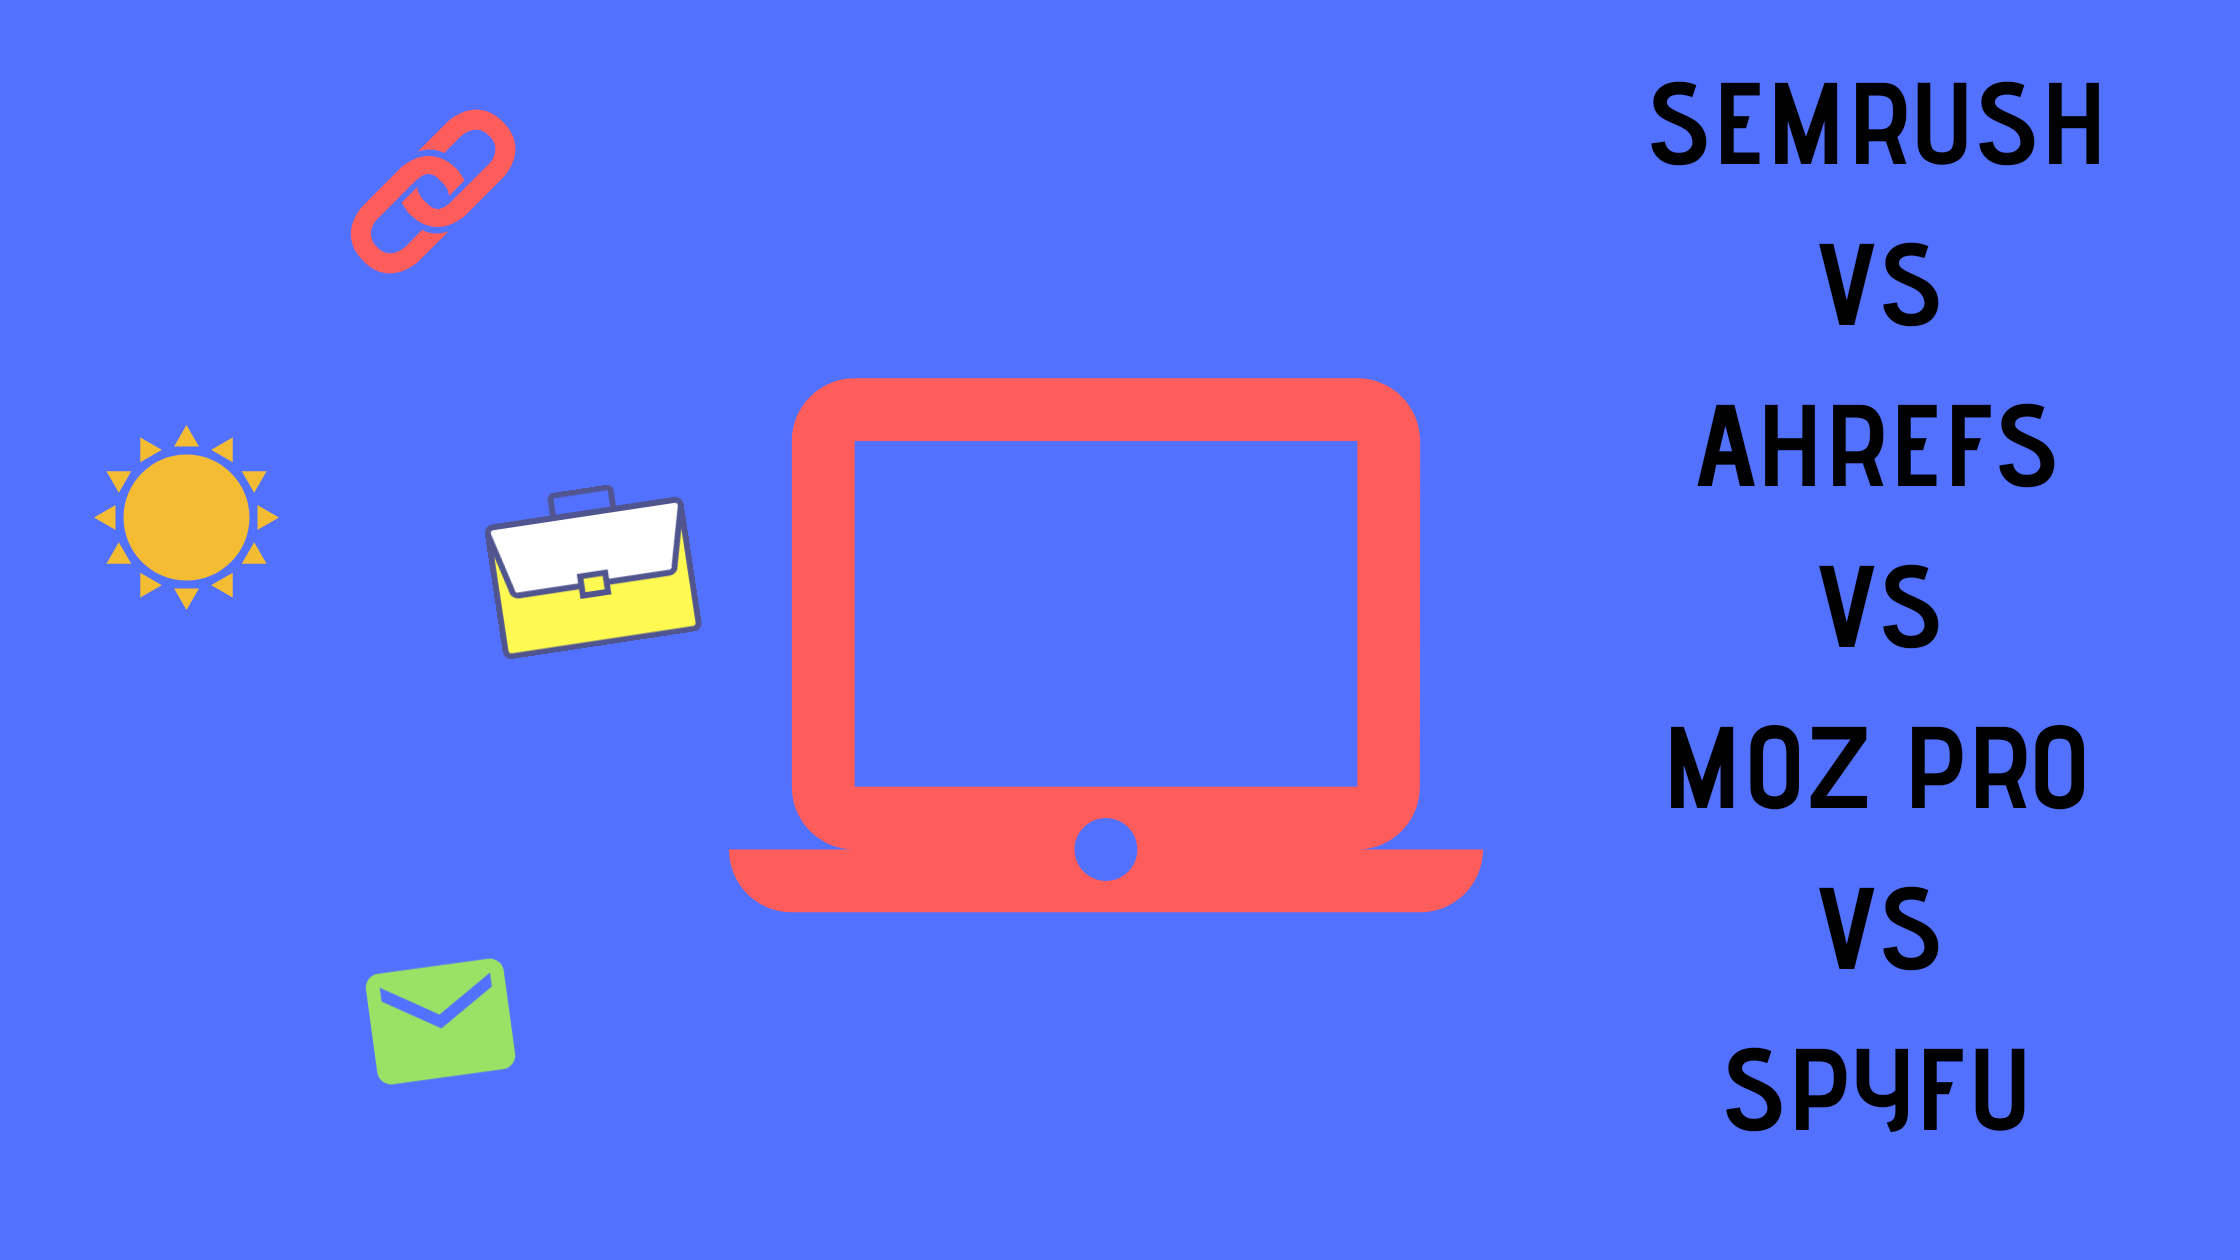 SEMrush Vs Ahrefs Vs Moz Pro Vs SpyFu: What Is The Best SEO Tool?